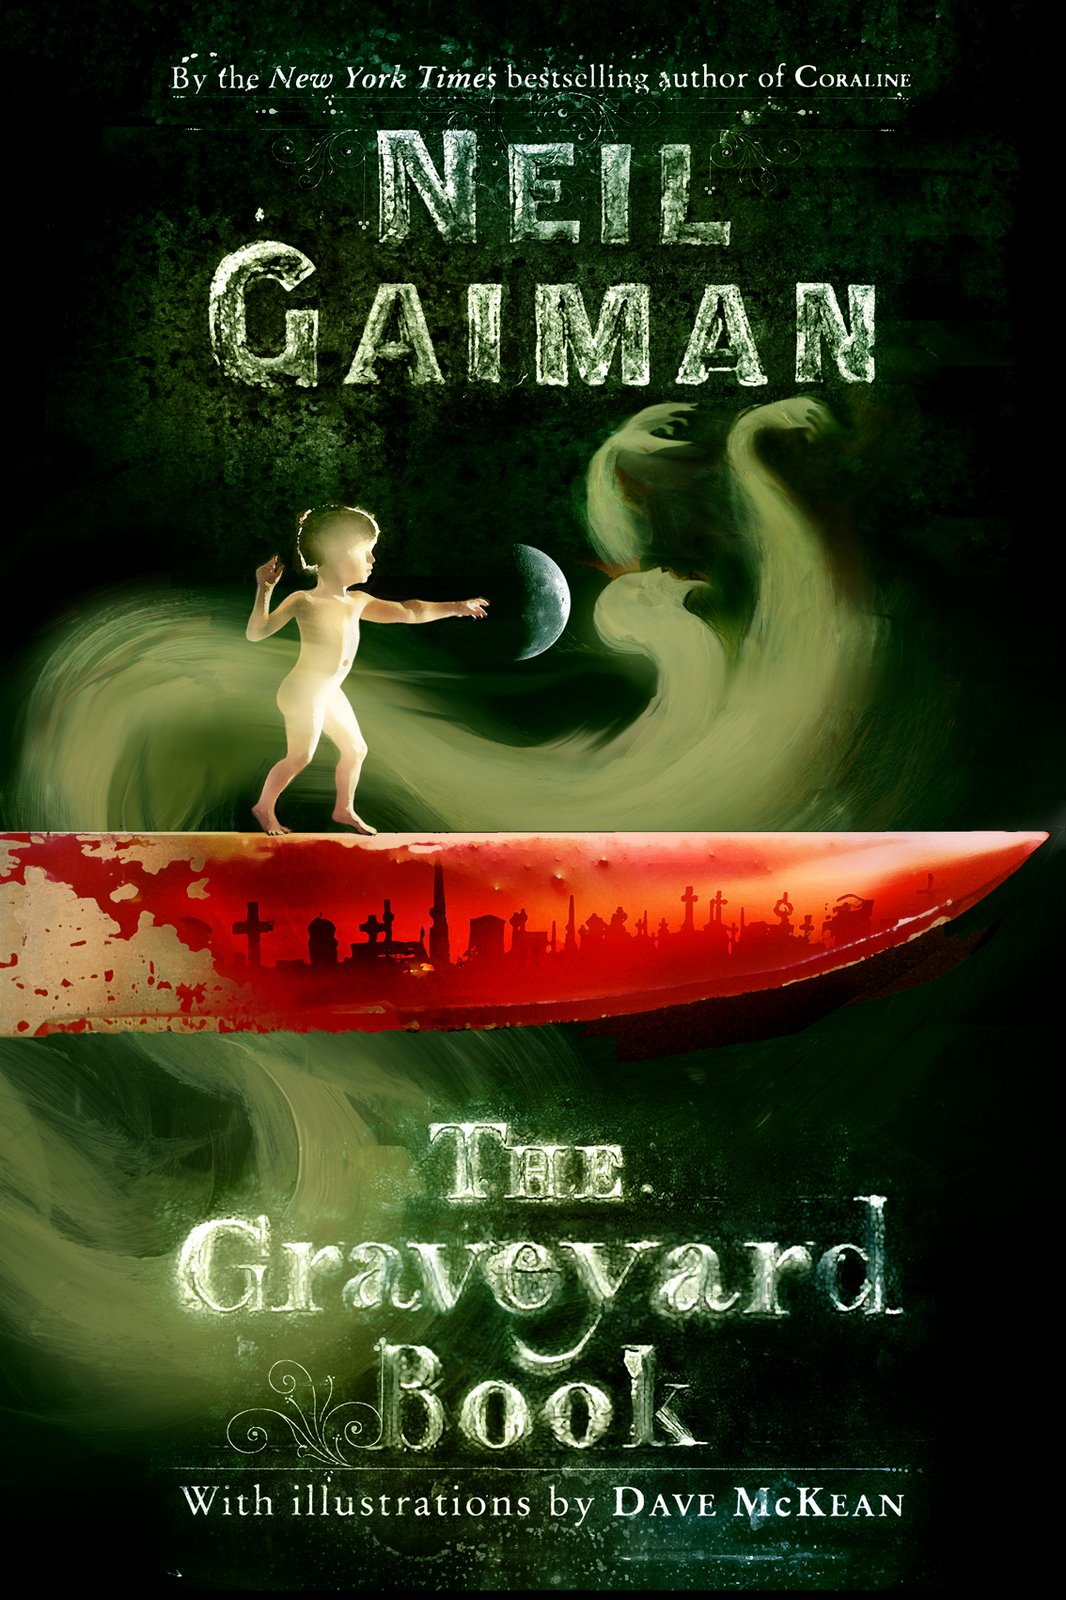 Book Review: The Graveyard Book by Neil Gaiman | The 9th Soul